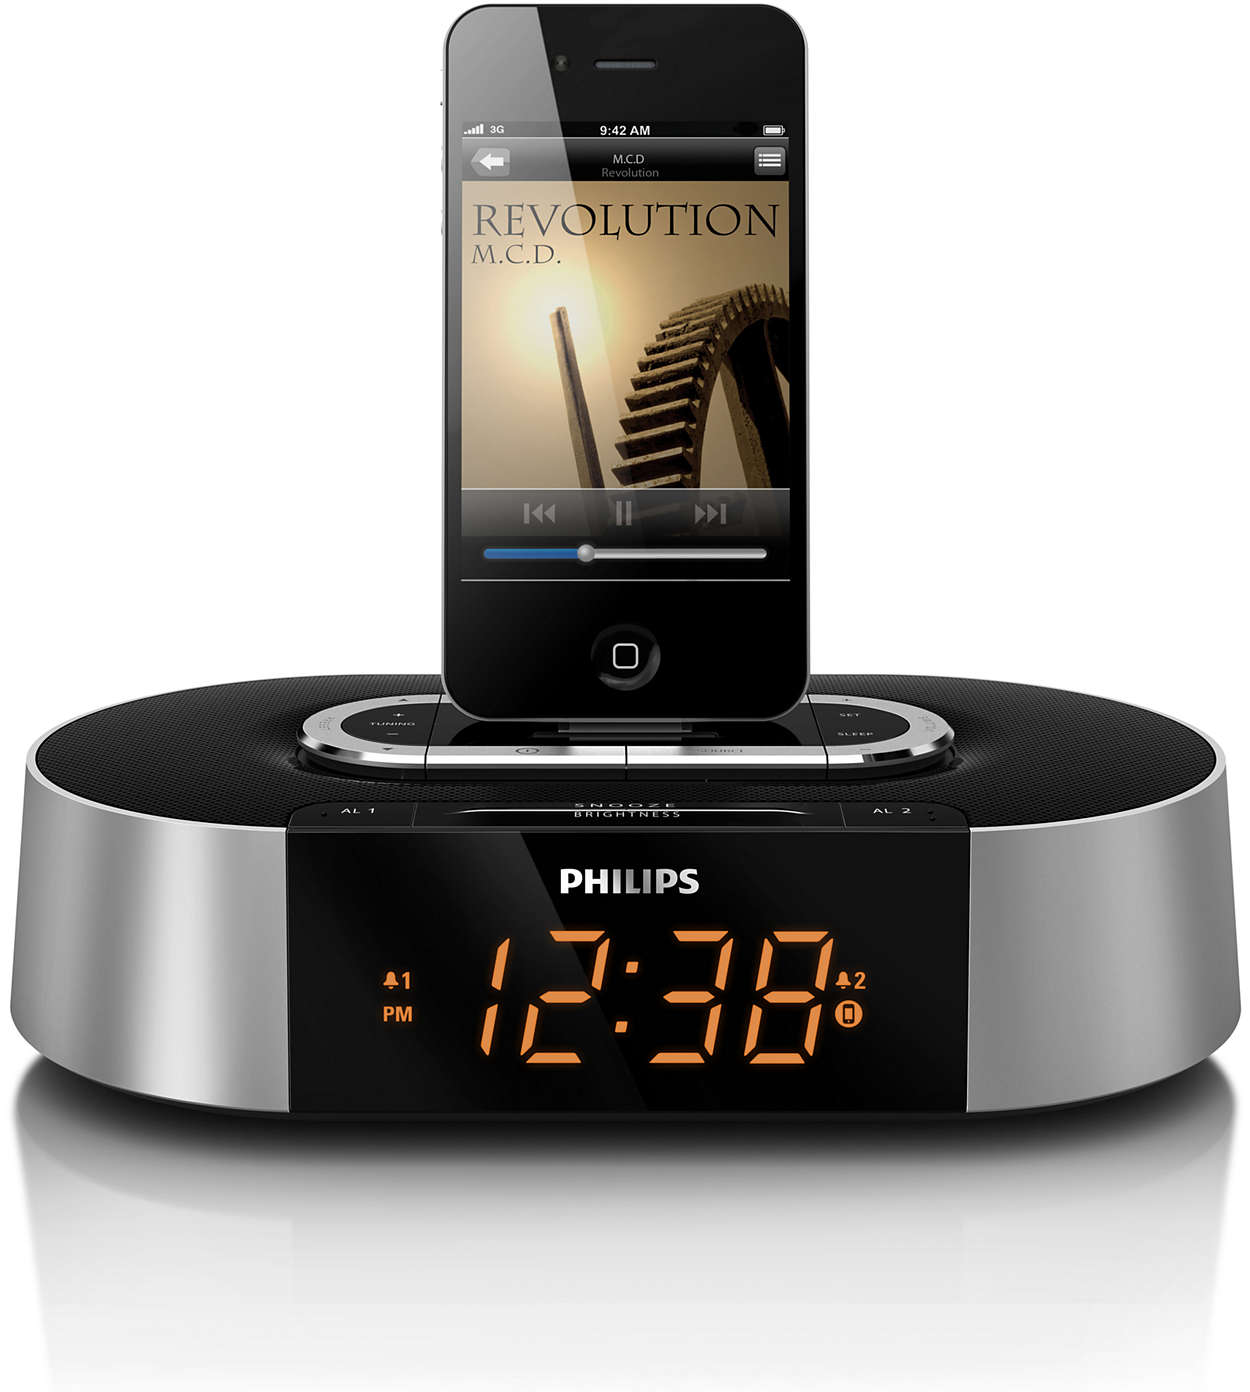 alarm clock radio for ipod iphone aj7030d 98 philips. Black Bedroom Furniture Sets. Home Design Ideas